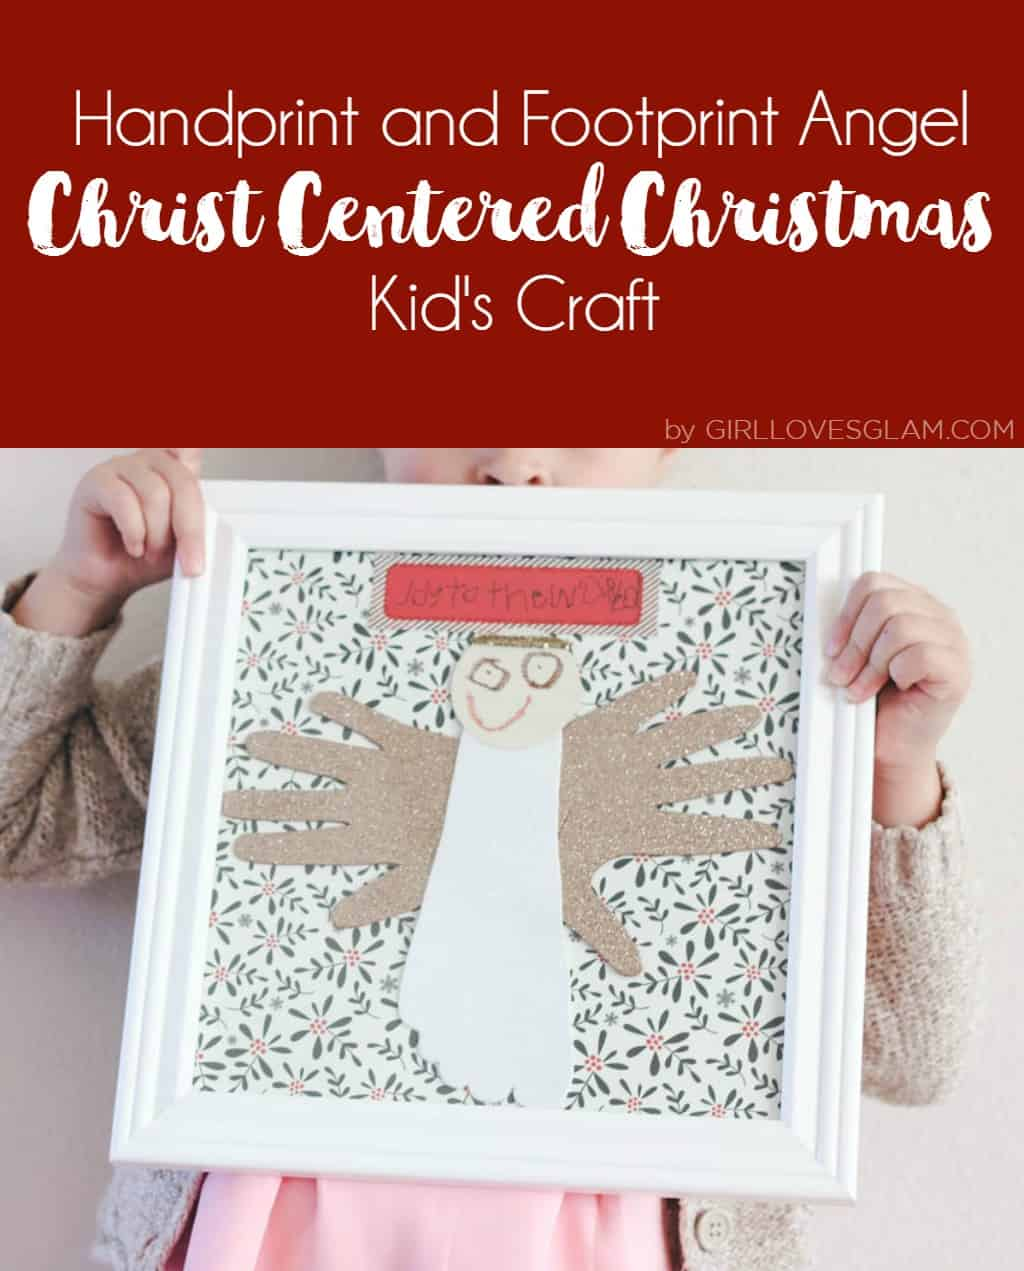 Christ Centered Christmas Kid's Craft | Handprint and Footprint Angel Craft